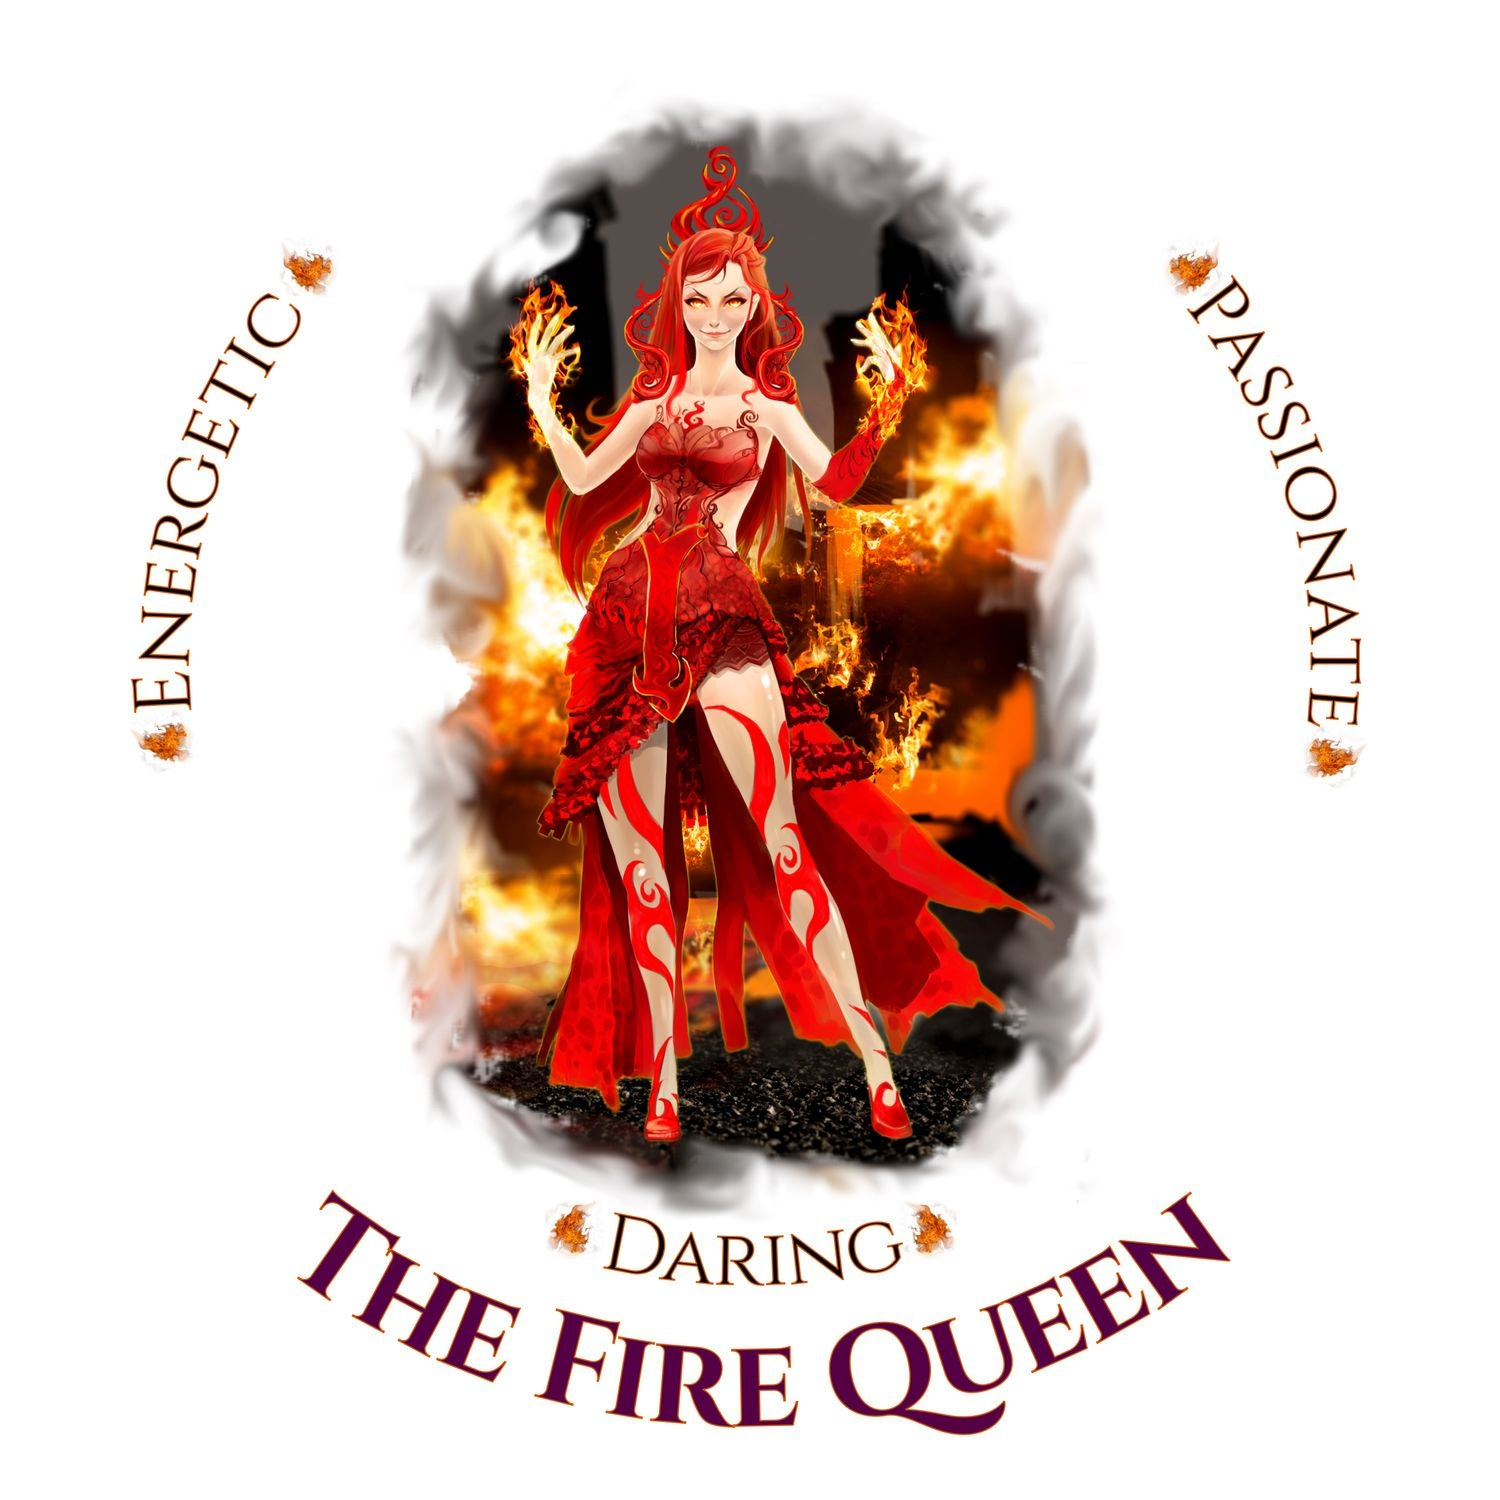 Naturally Wicked Fire Queen Surrounded By Fire & Text - Energetic, Passionate & Daring